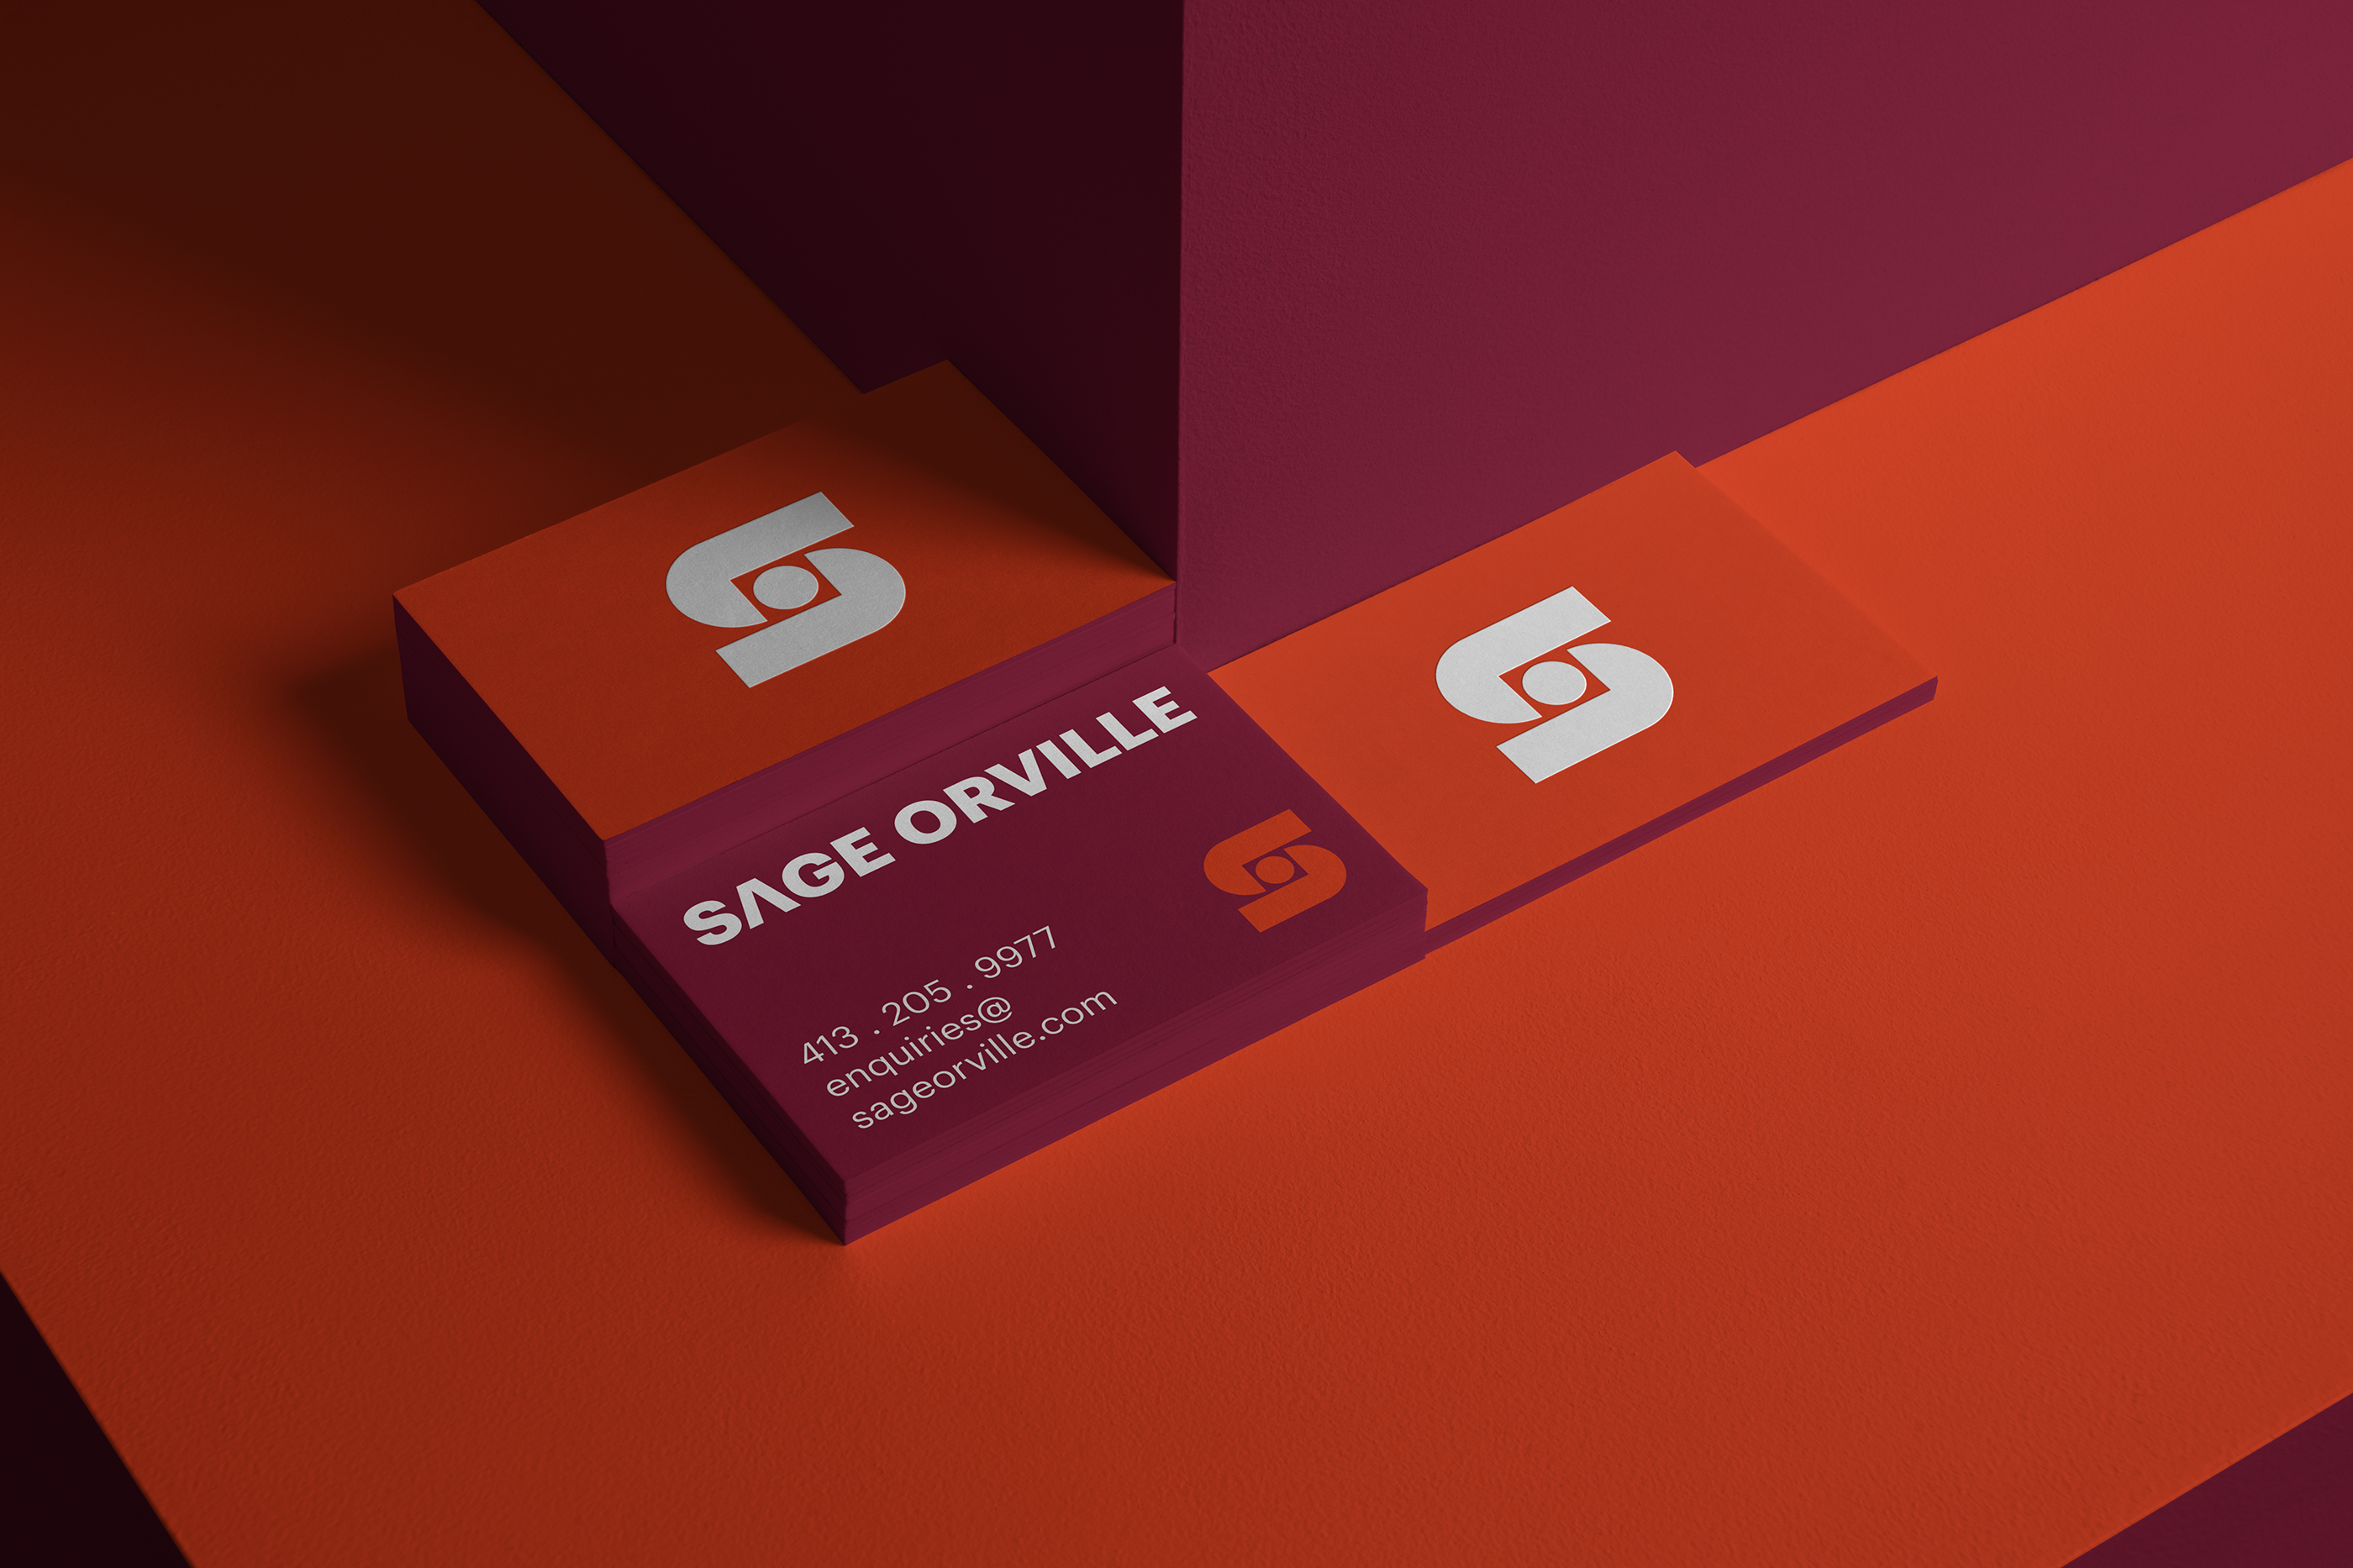 Sage Orville businesscards